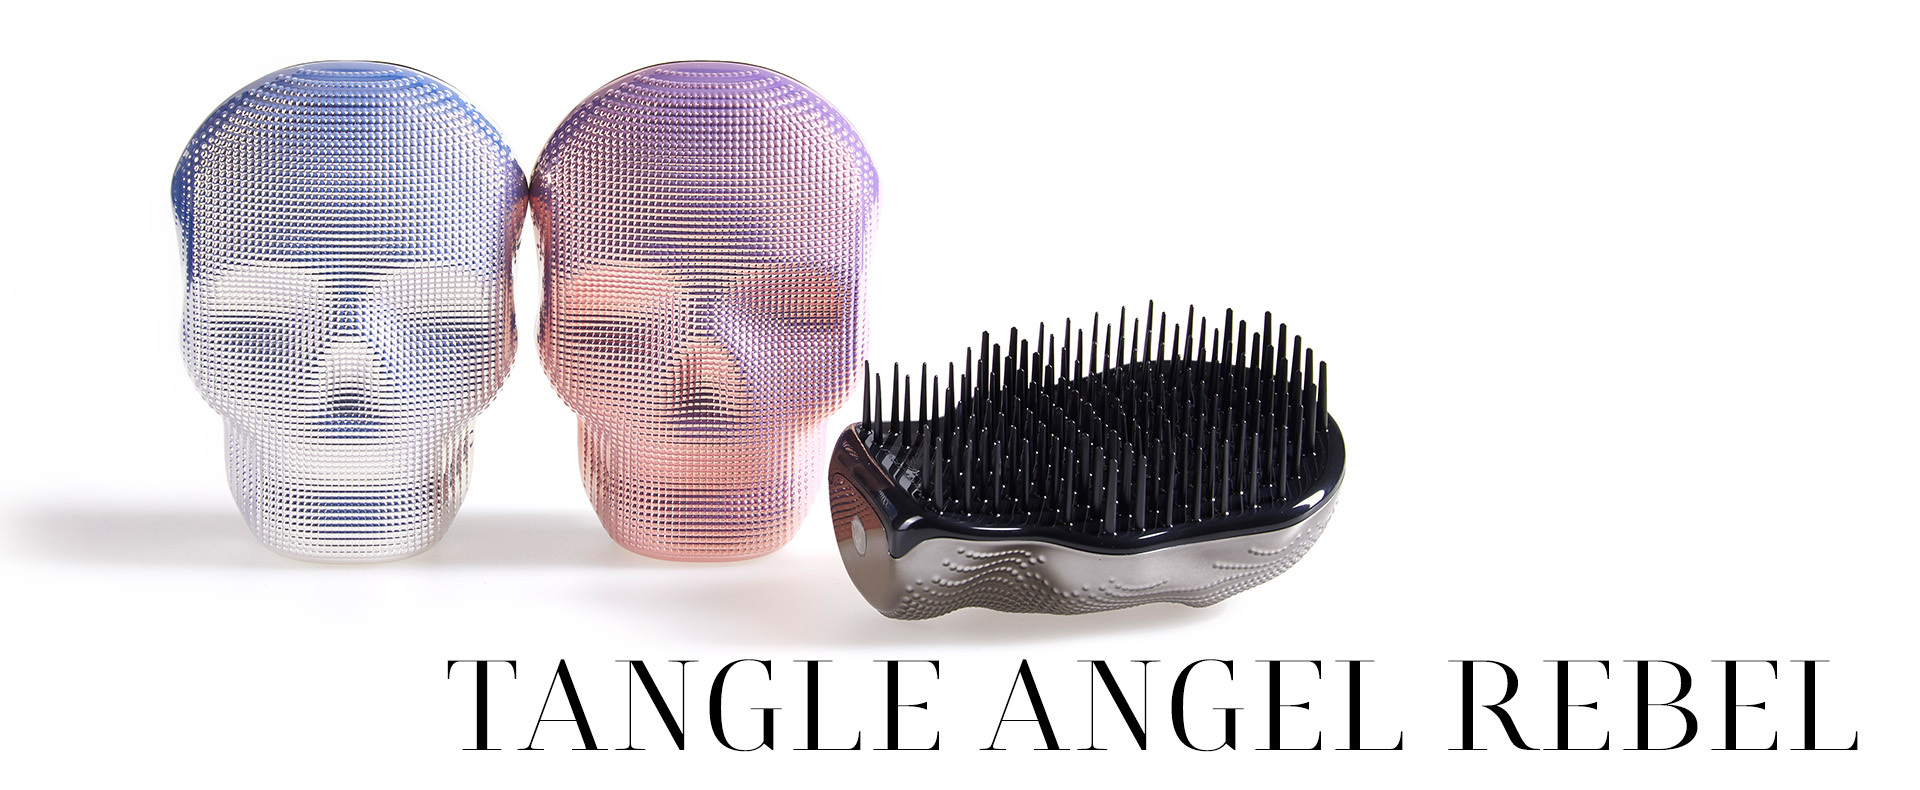 Tangle Angel Rebel (© Great Lengths)